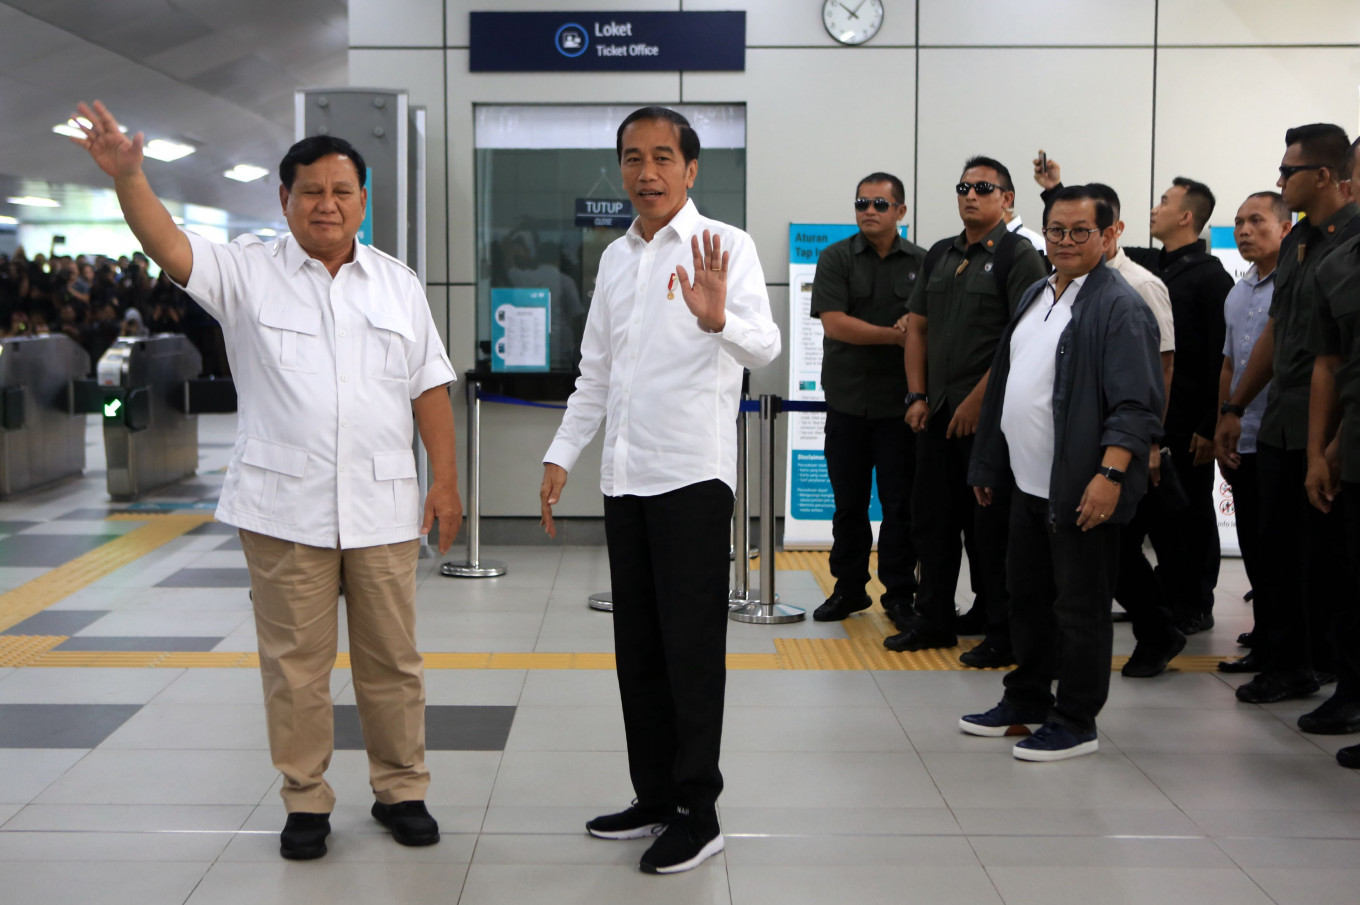 'No more 'cebong', 'kampret': Jokowi, Prabowo call for national unity